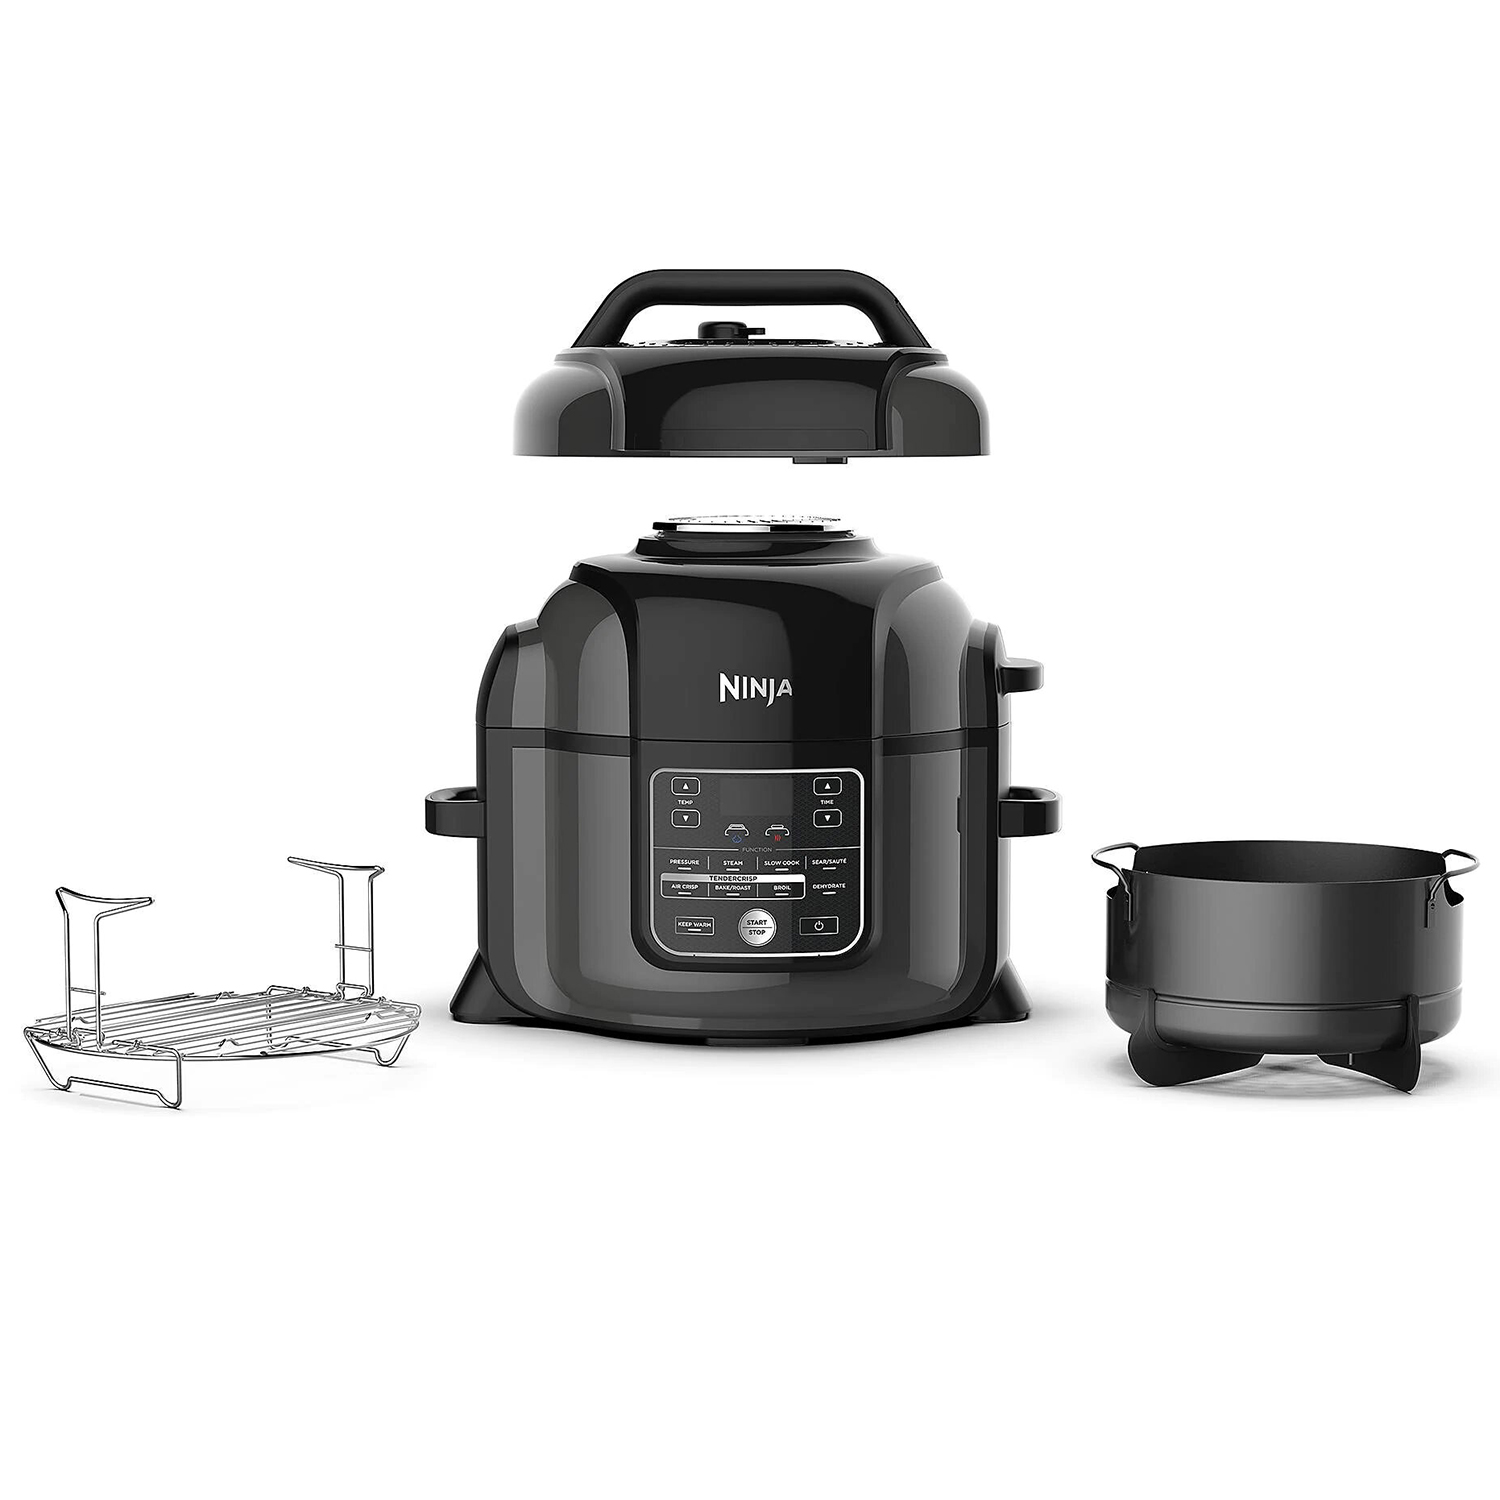 Ninja Foodi™ 6.5 qt. Pressure Cooker with TenderCrisp